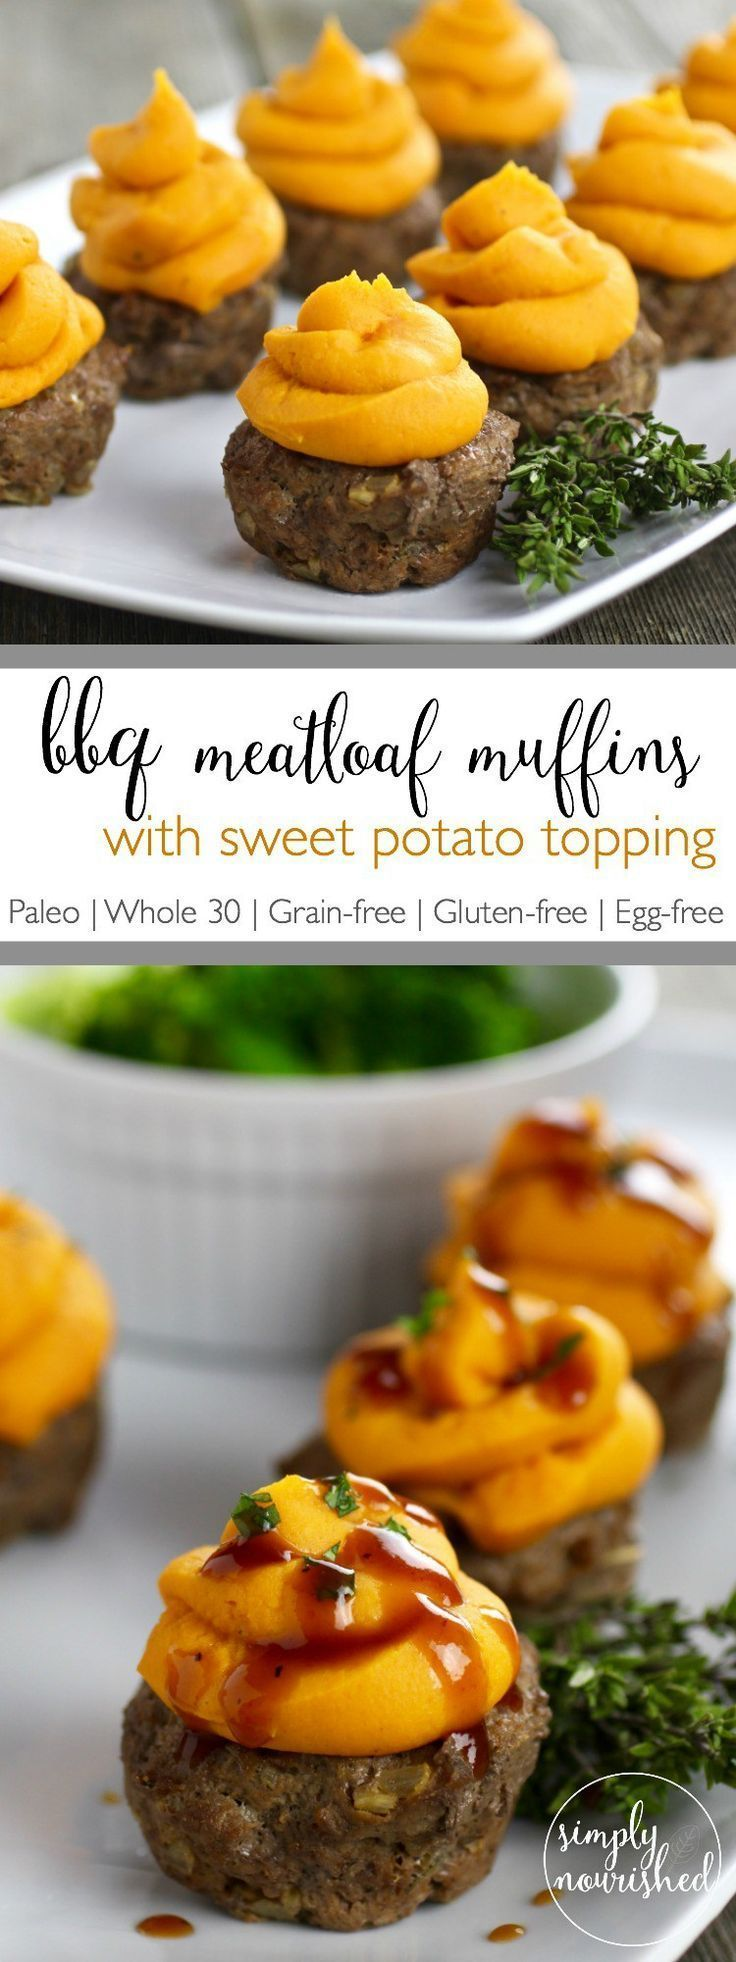 BBQ Meatloaf Muffins with Sweet Potato Topping  Paleo   Whole 30   Egg-free